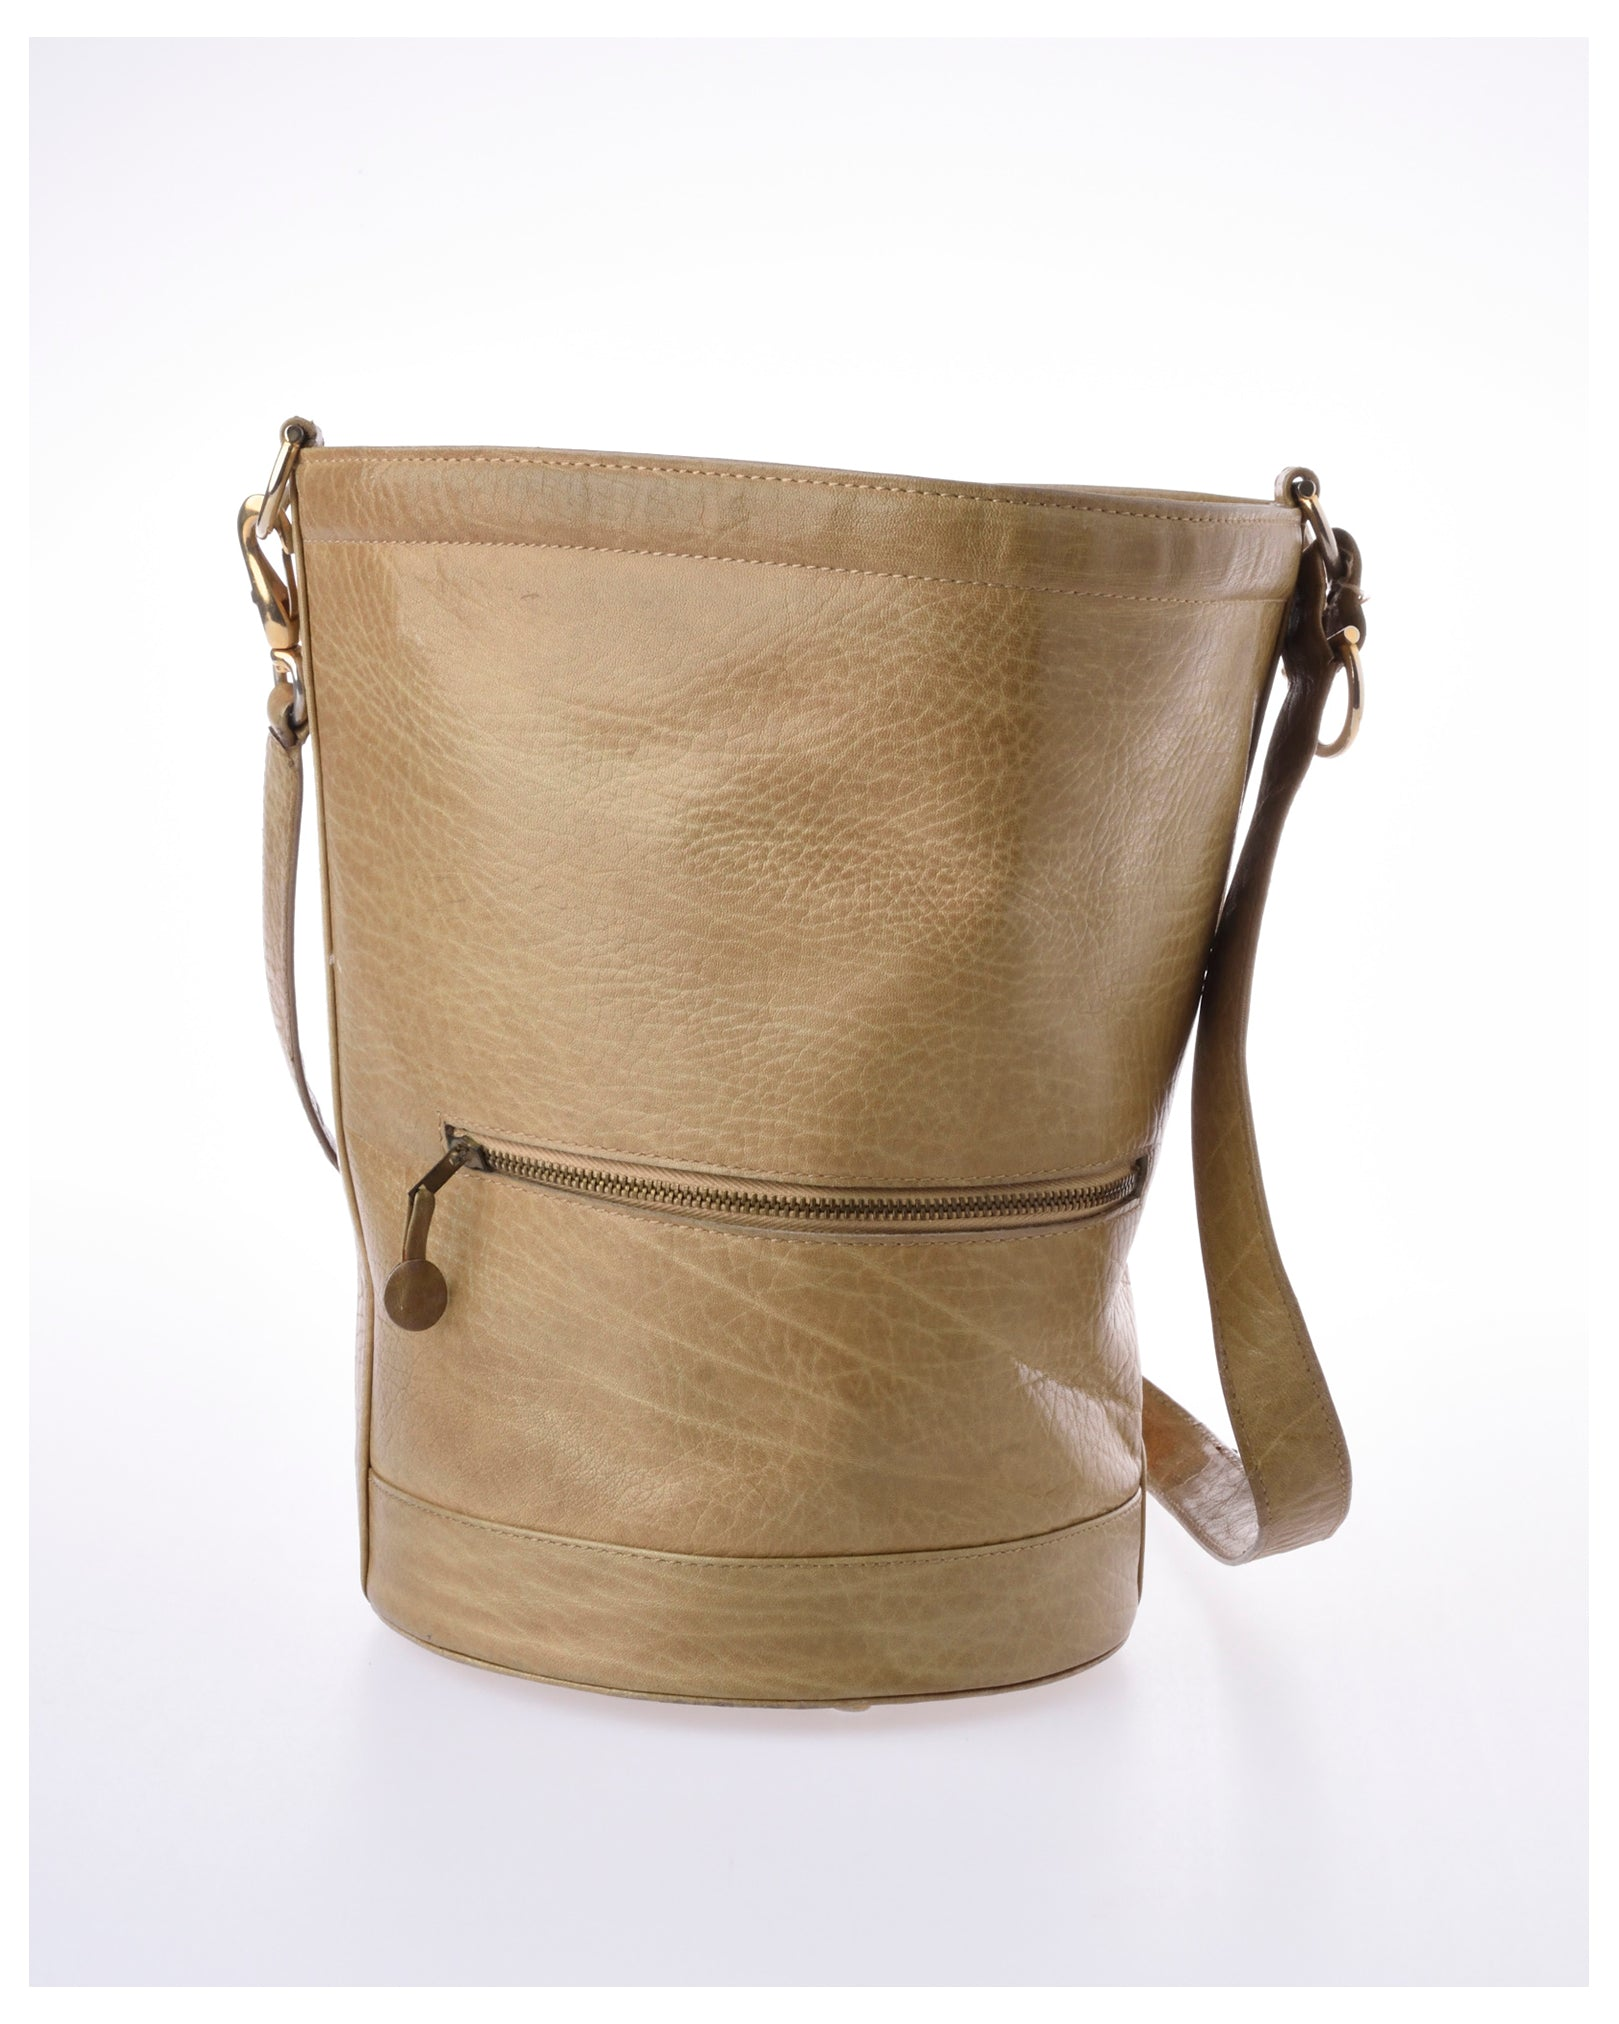 PIROVANO 1970s Bucket Bag